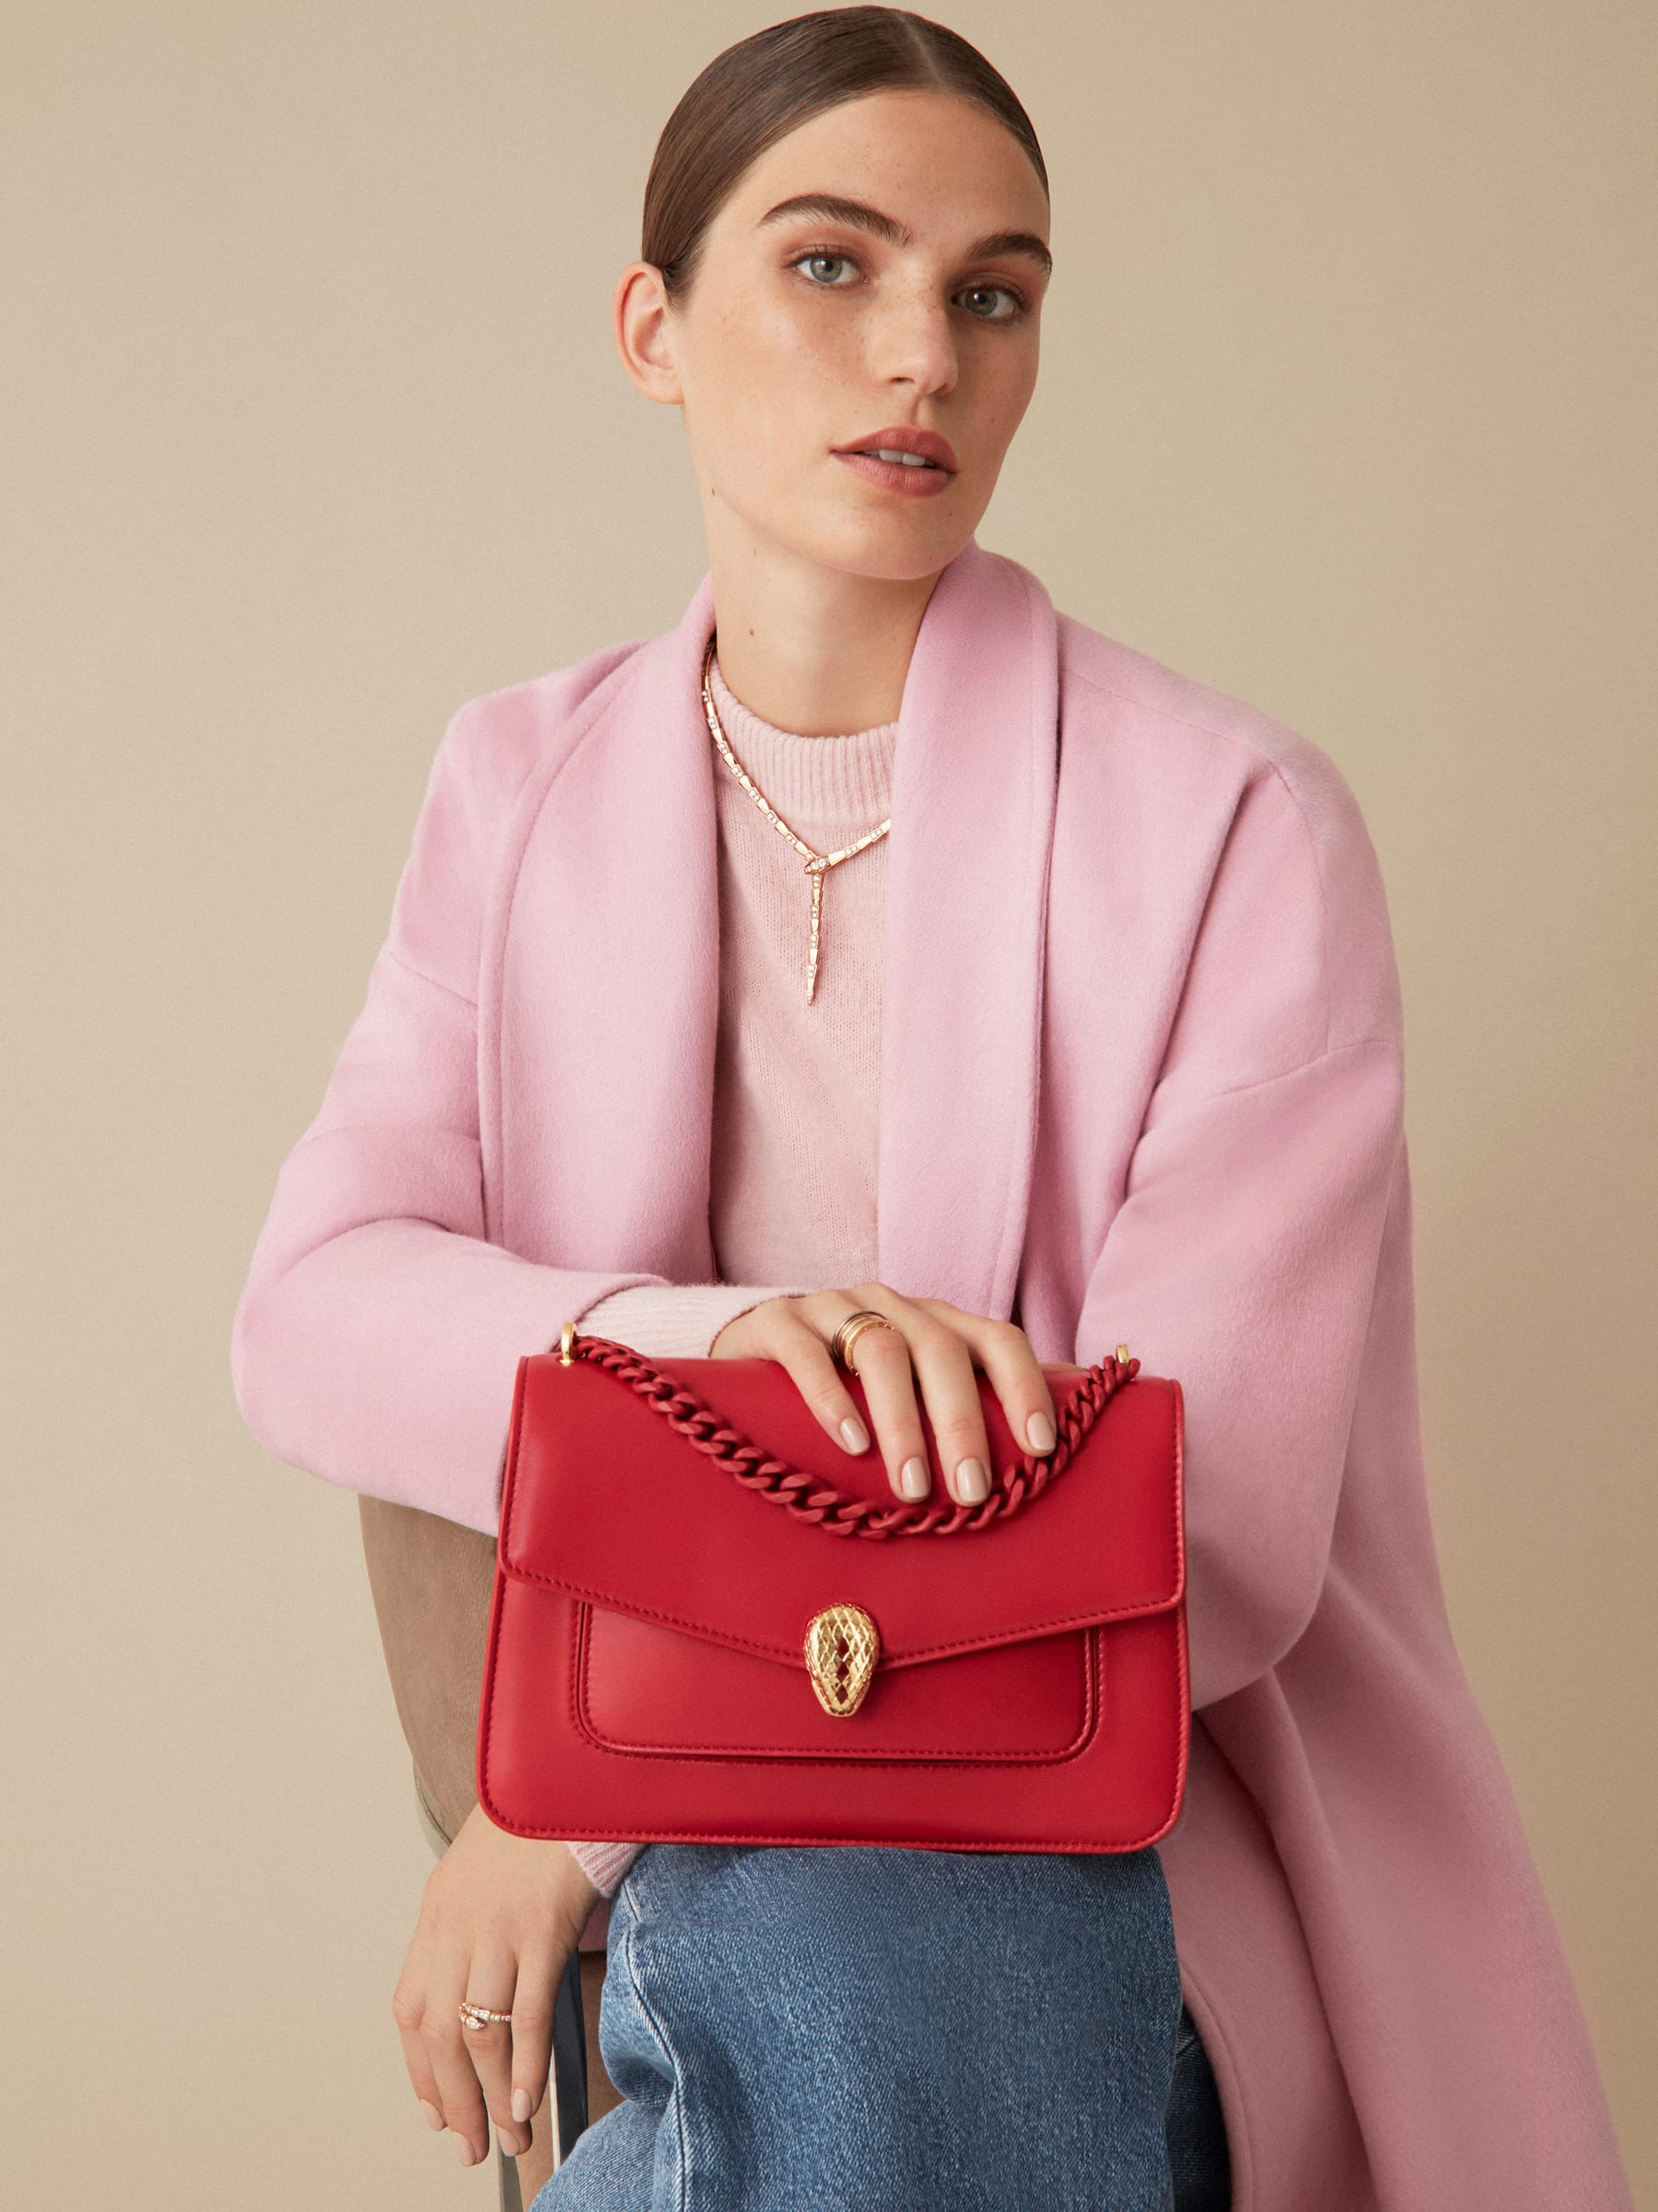 """Serpenti Forever"" maxi chain crossbody bag in Amaranth Garnet red nappa leather, with Pink Spinel fuchsia nappa leather inner lining. New Serpenti head closure in gold-plated brass, finished with small red carnelian scales in the middle and red enamel eyes. 1138-MCN image 8"